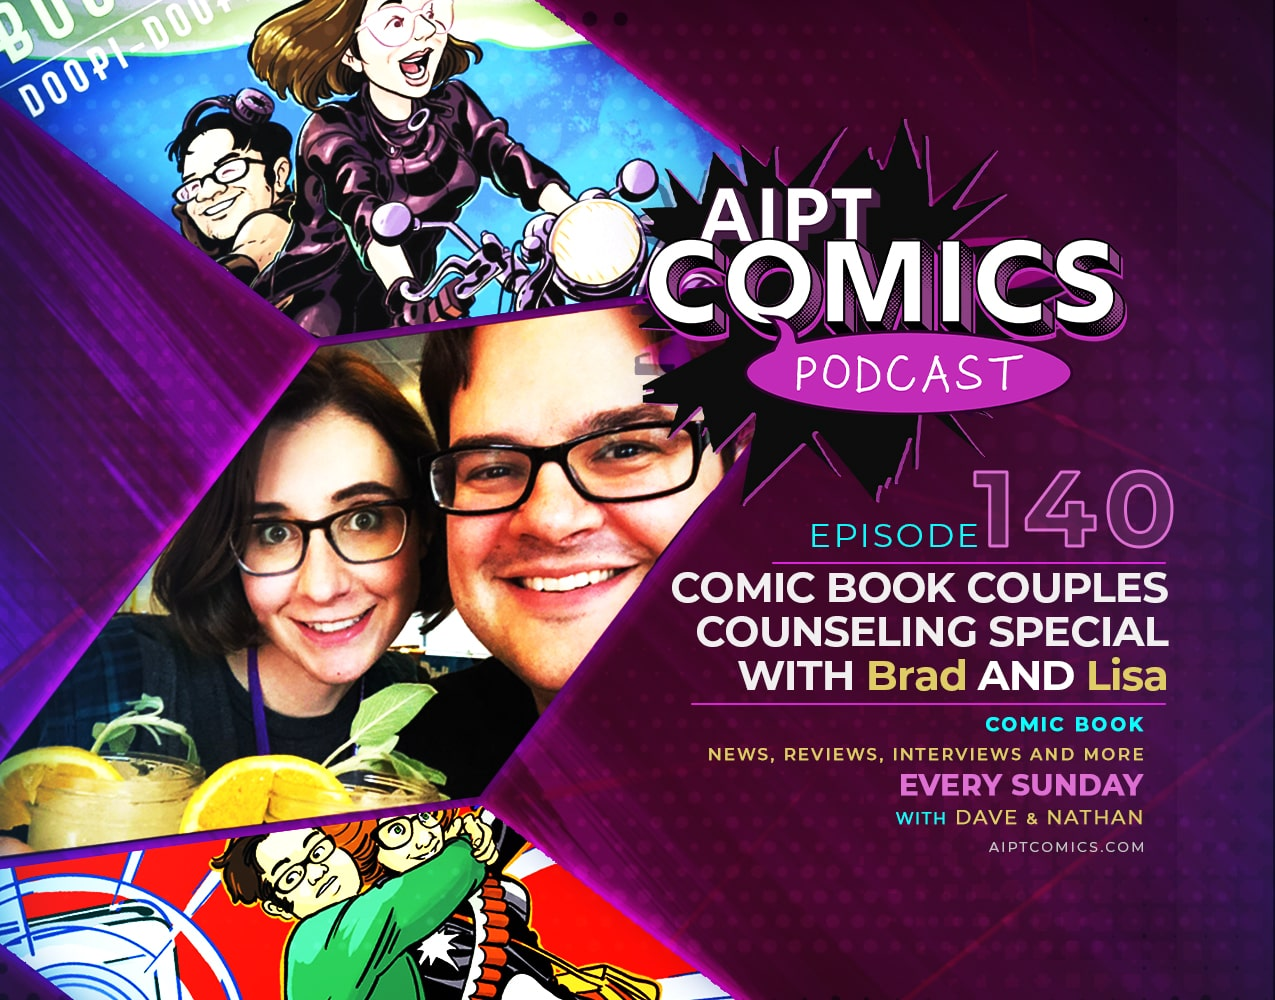 AIPT Comics podcast episode 140: Comic Book Couples Counseling Special